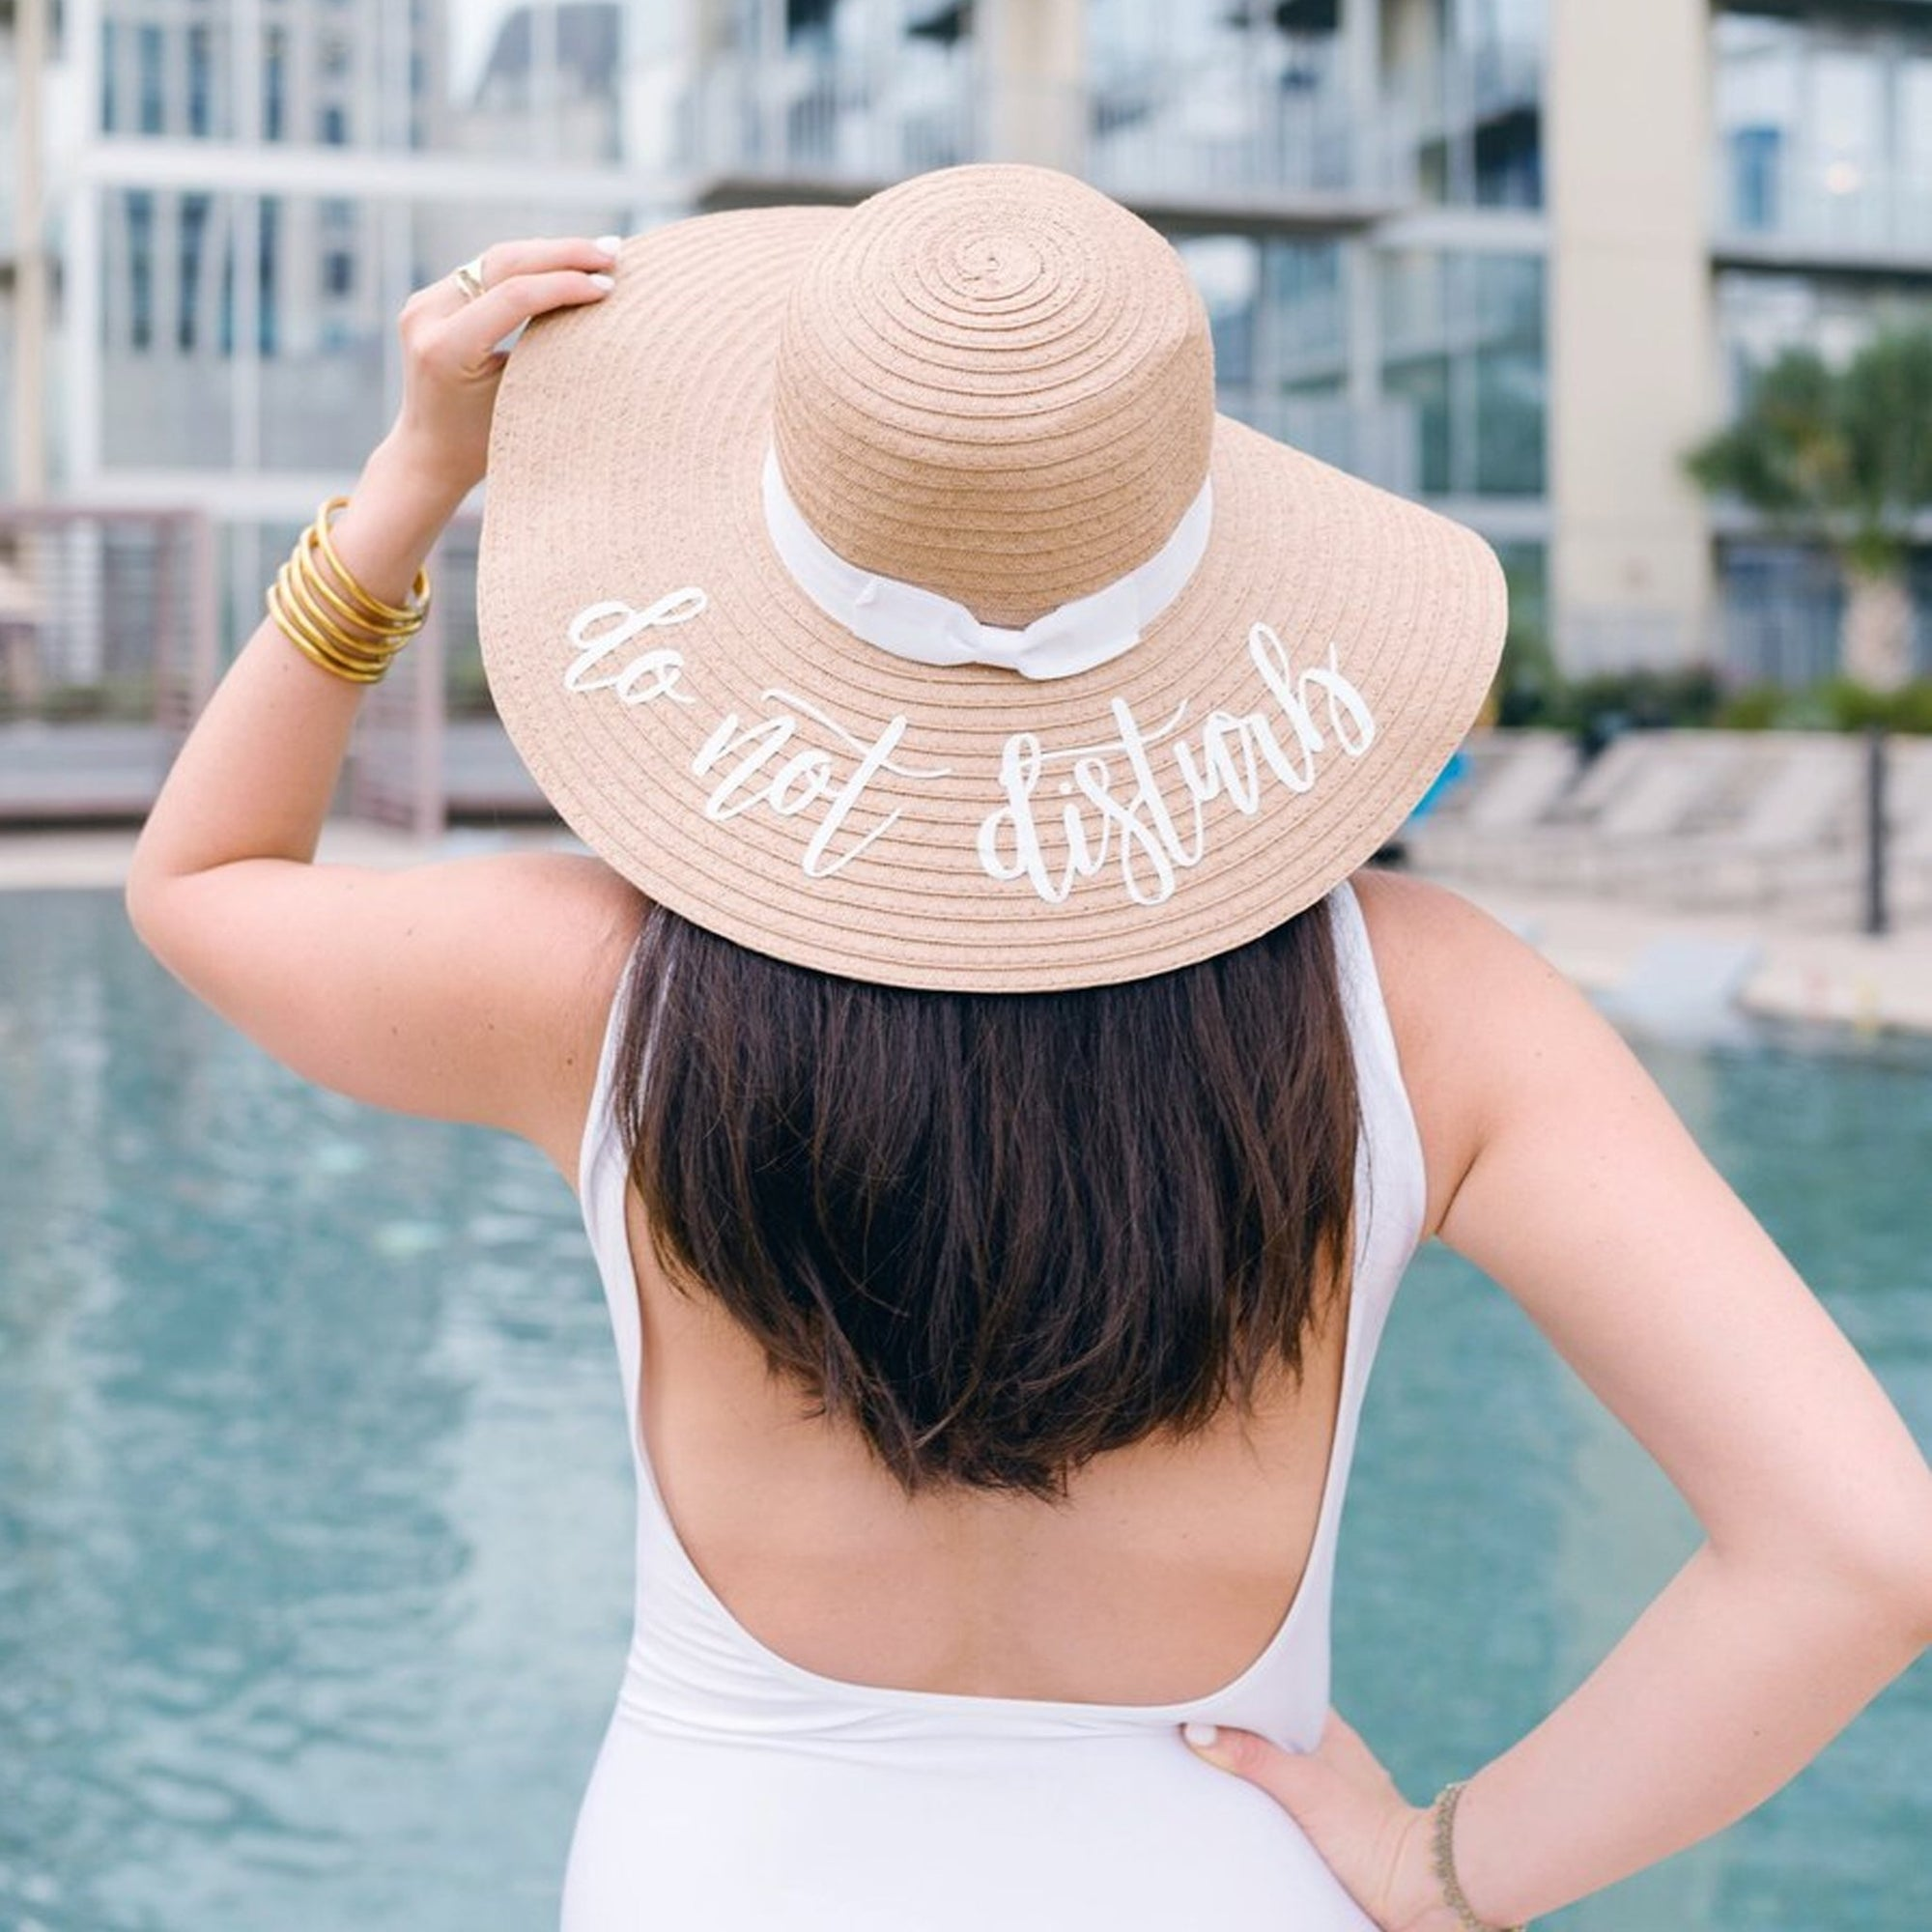 Custom Saying, Floppy Beach Hat (White Ribbon)